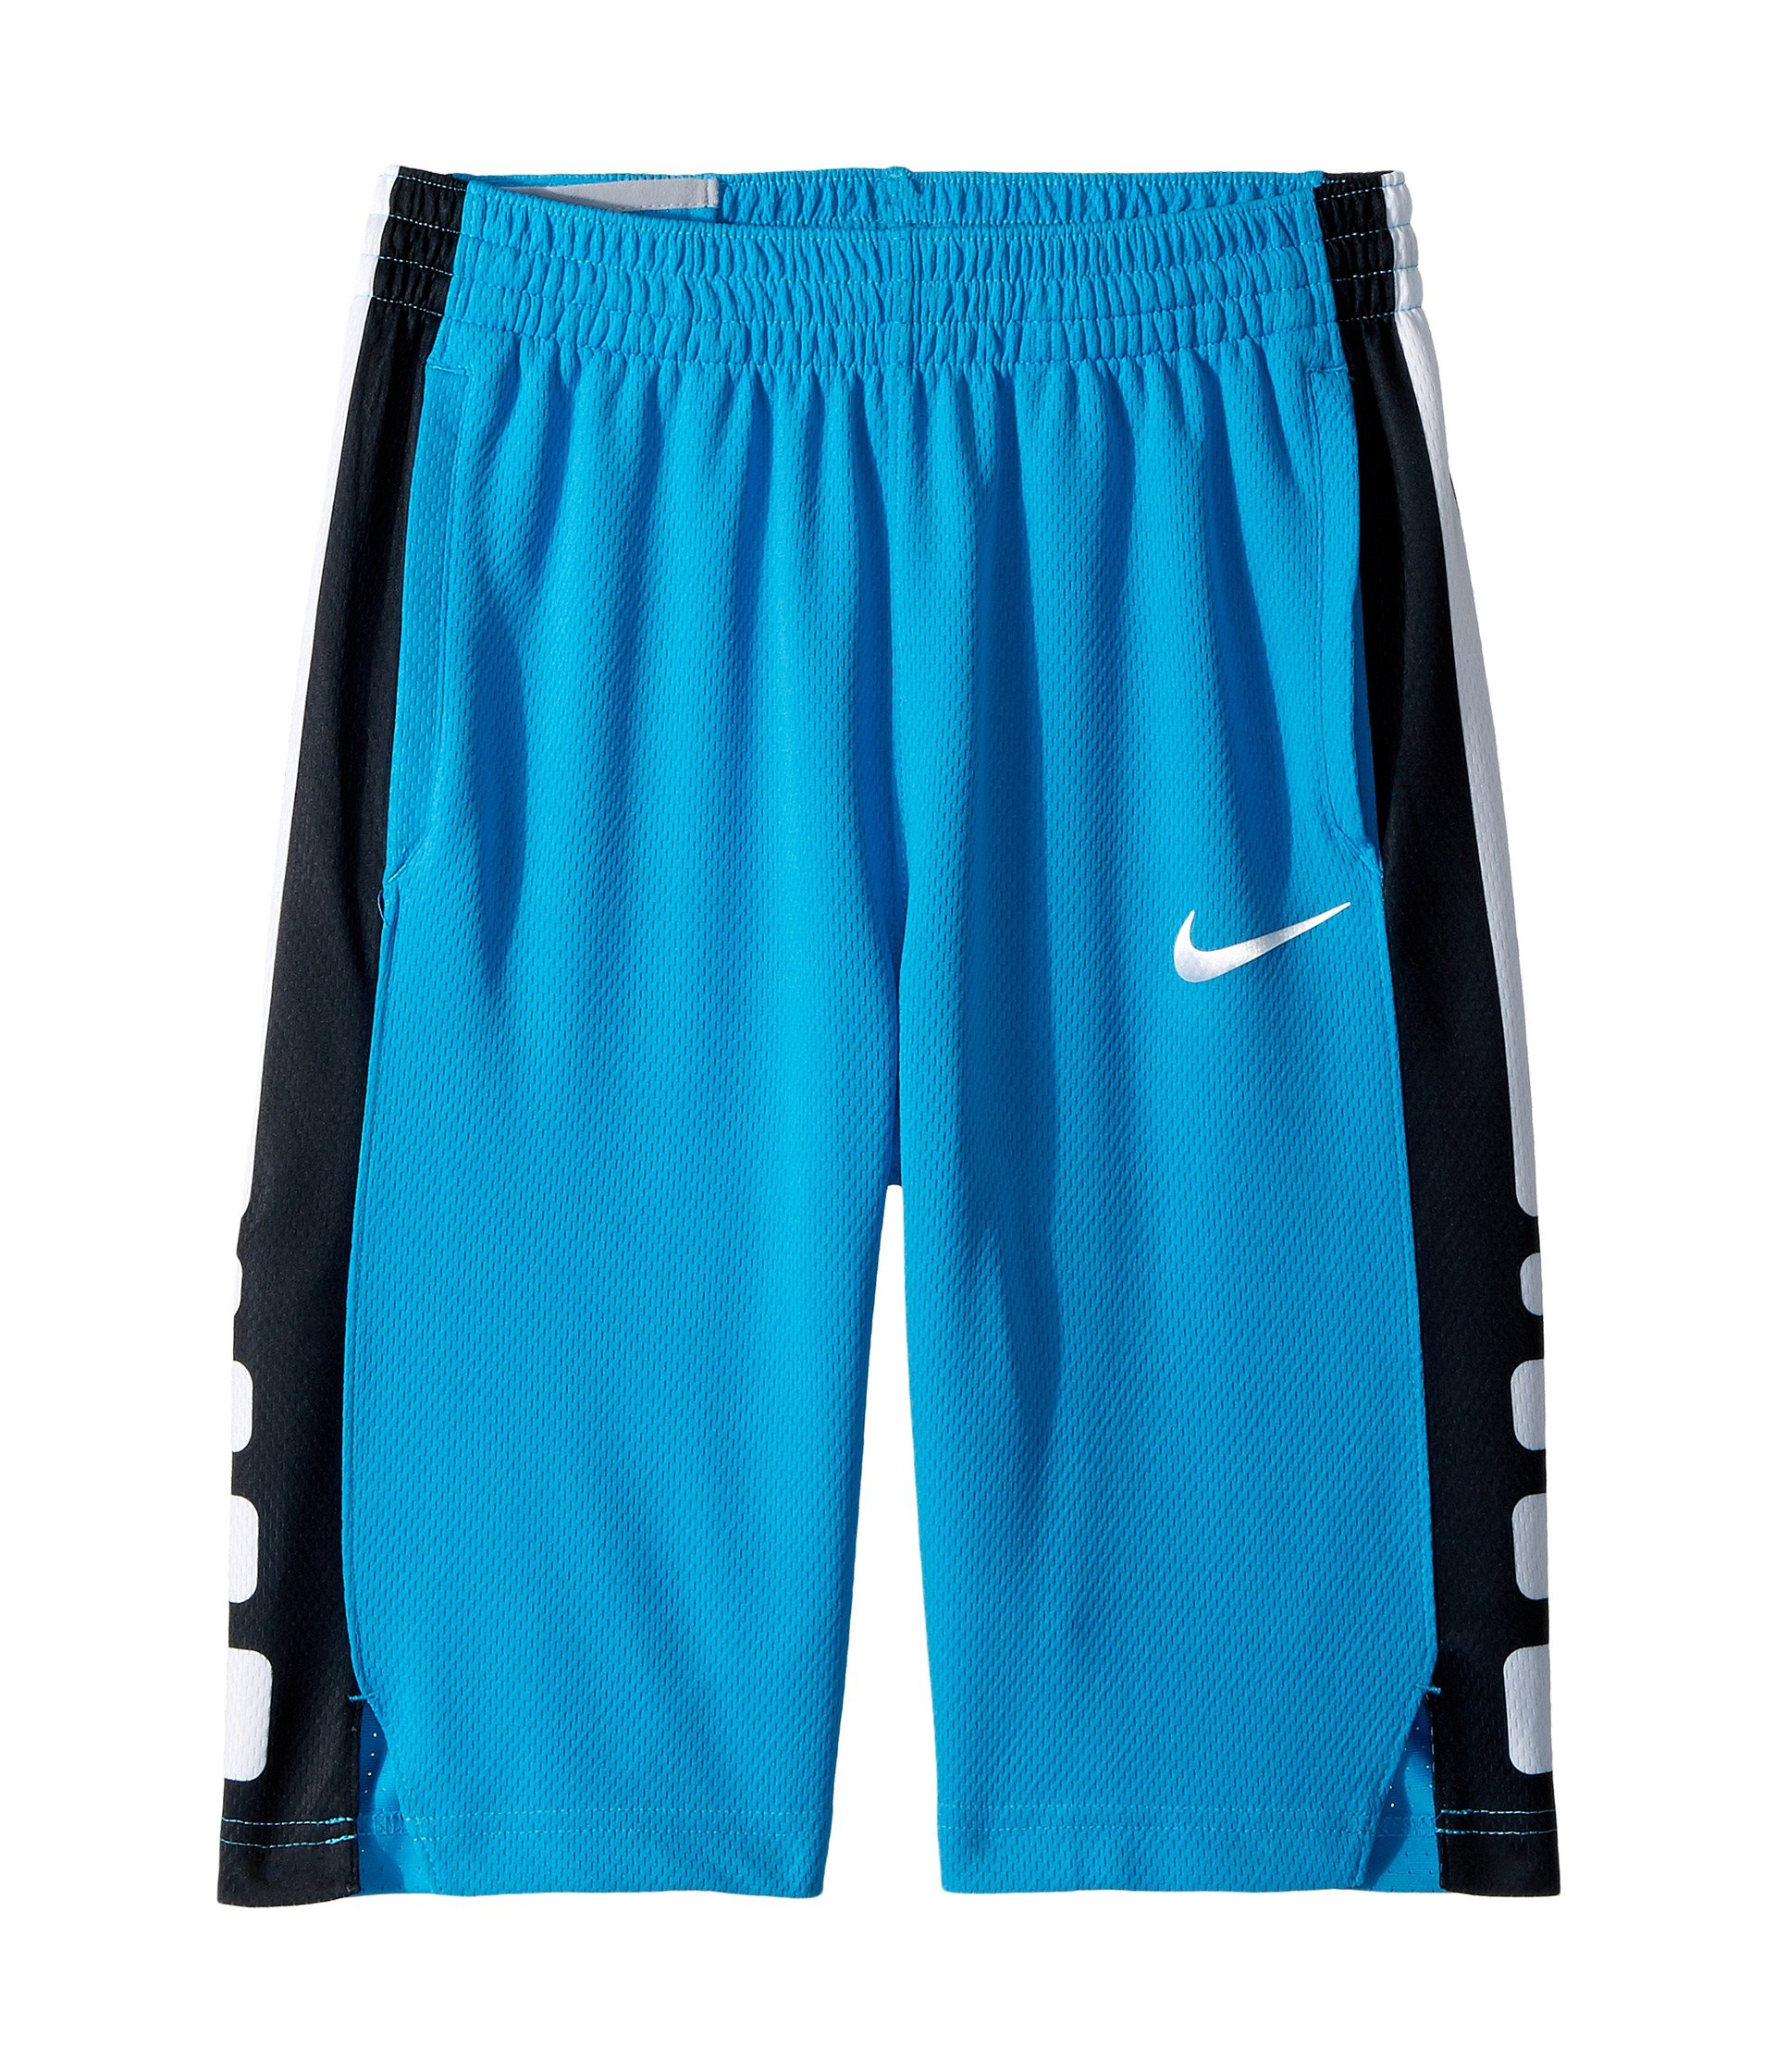 NIKE Boy's Dry Elite Stripe Basketball Shorts (Equator Blue/Black/White, Large)